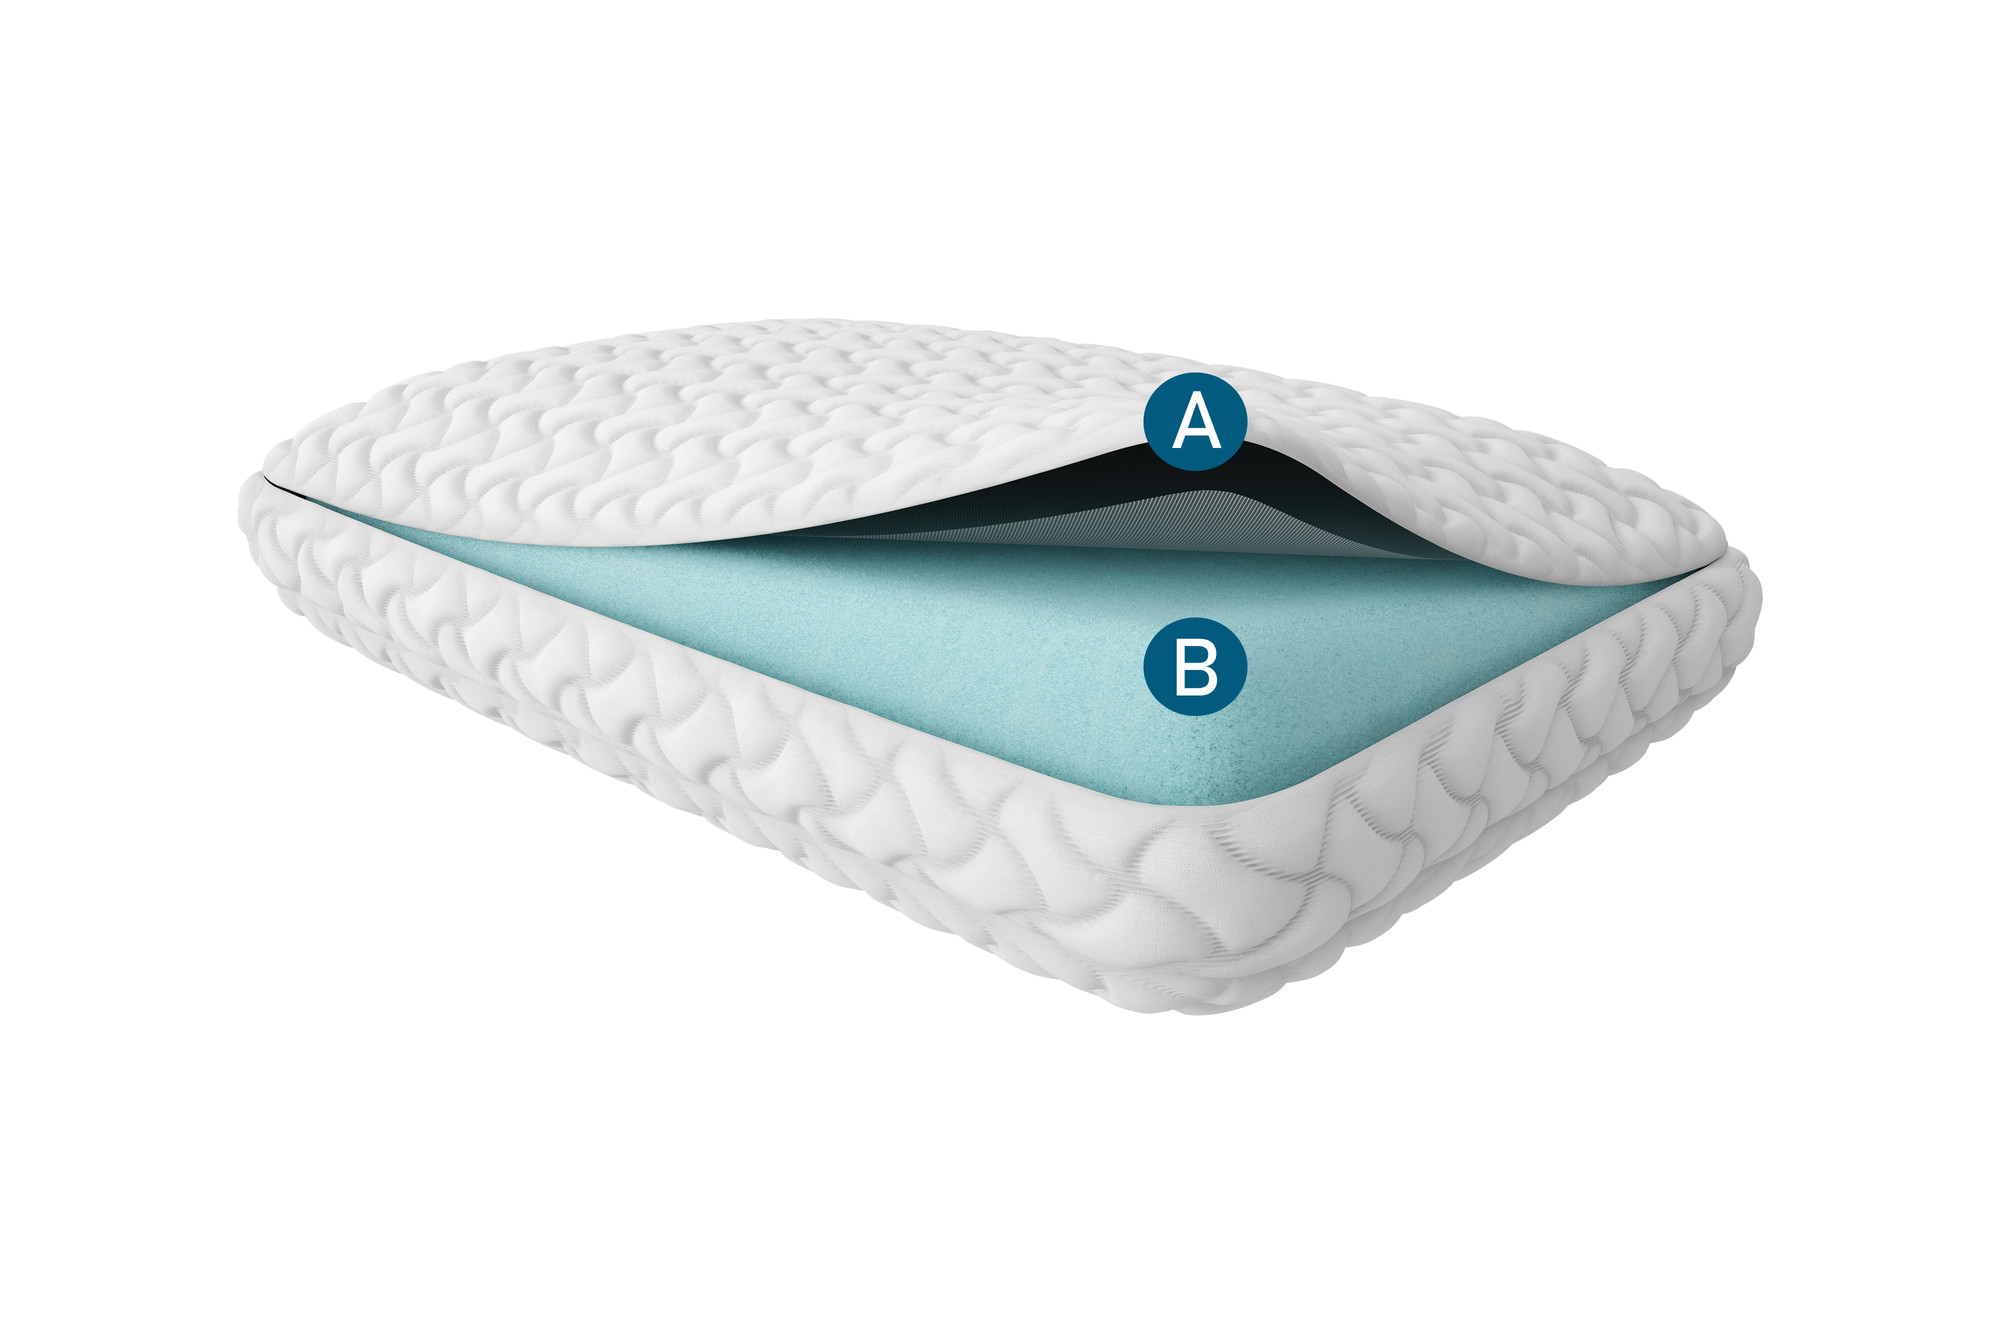 The cutaway image showing the layers of a tempur-cloud pillow